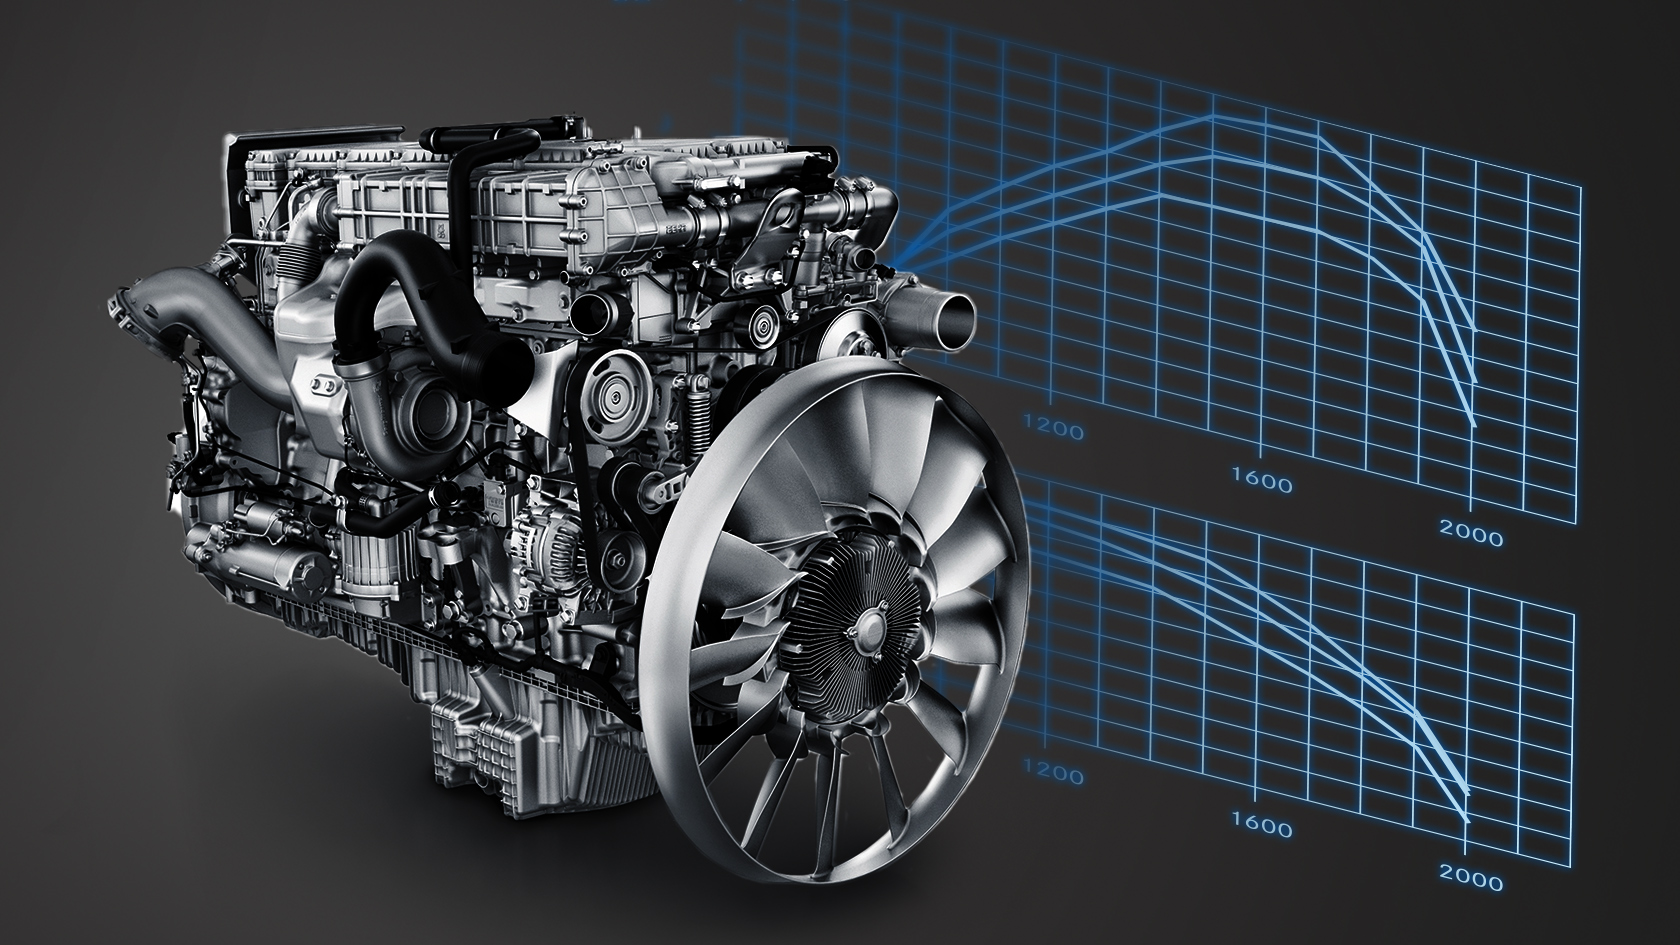 The new Actros: Engine performance data – Mercedes-Benz